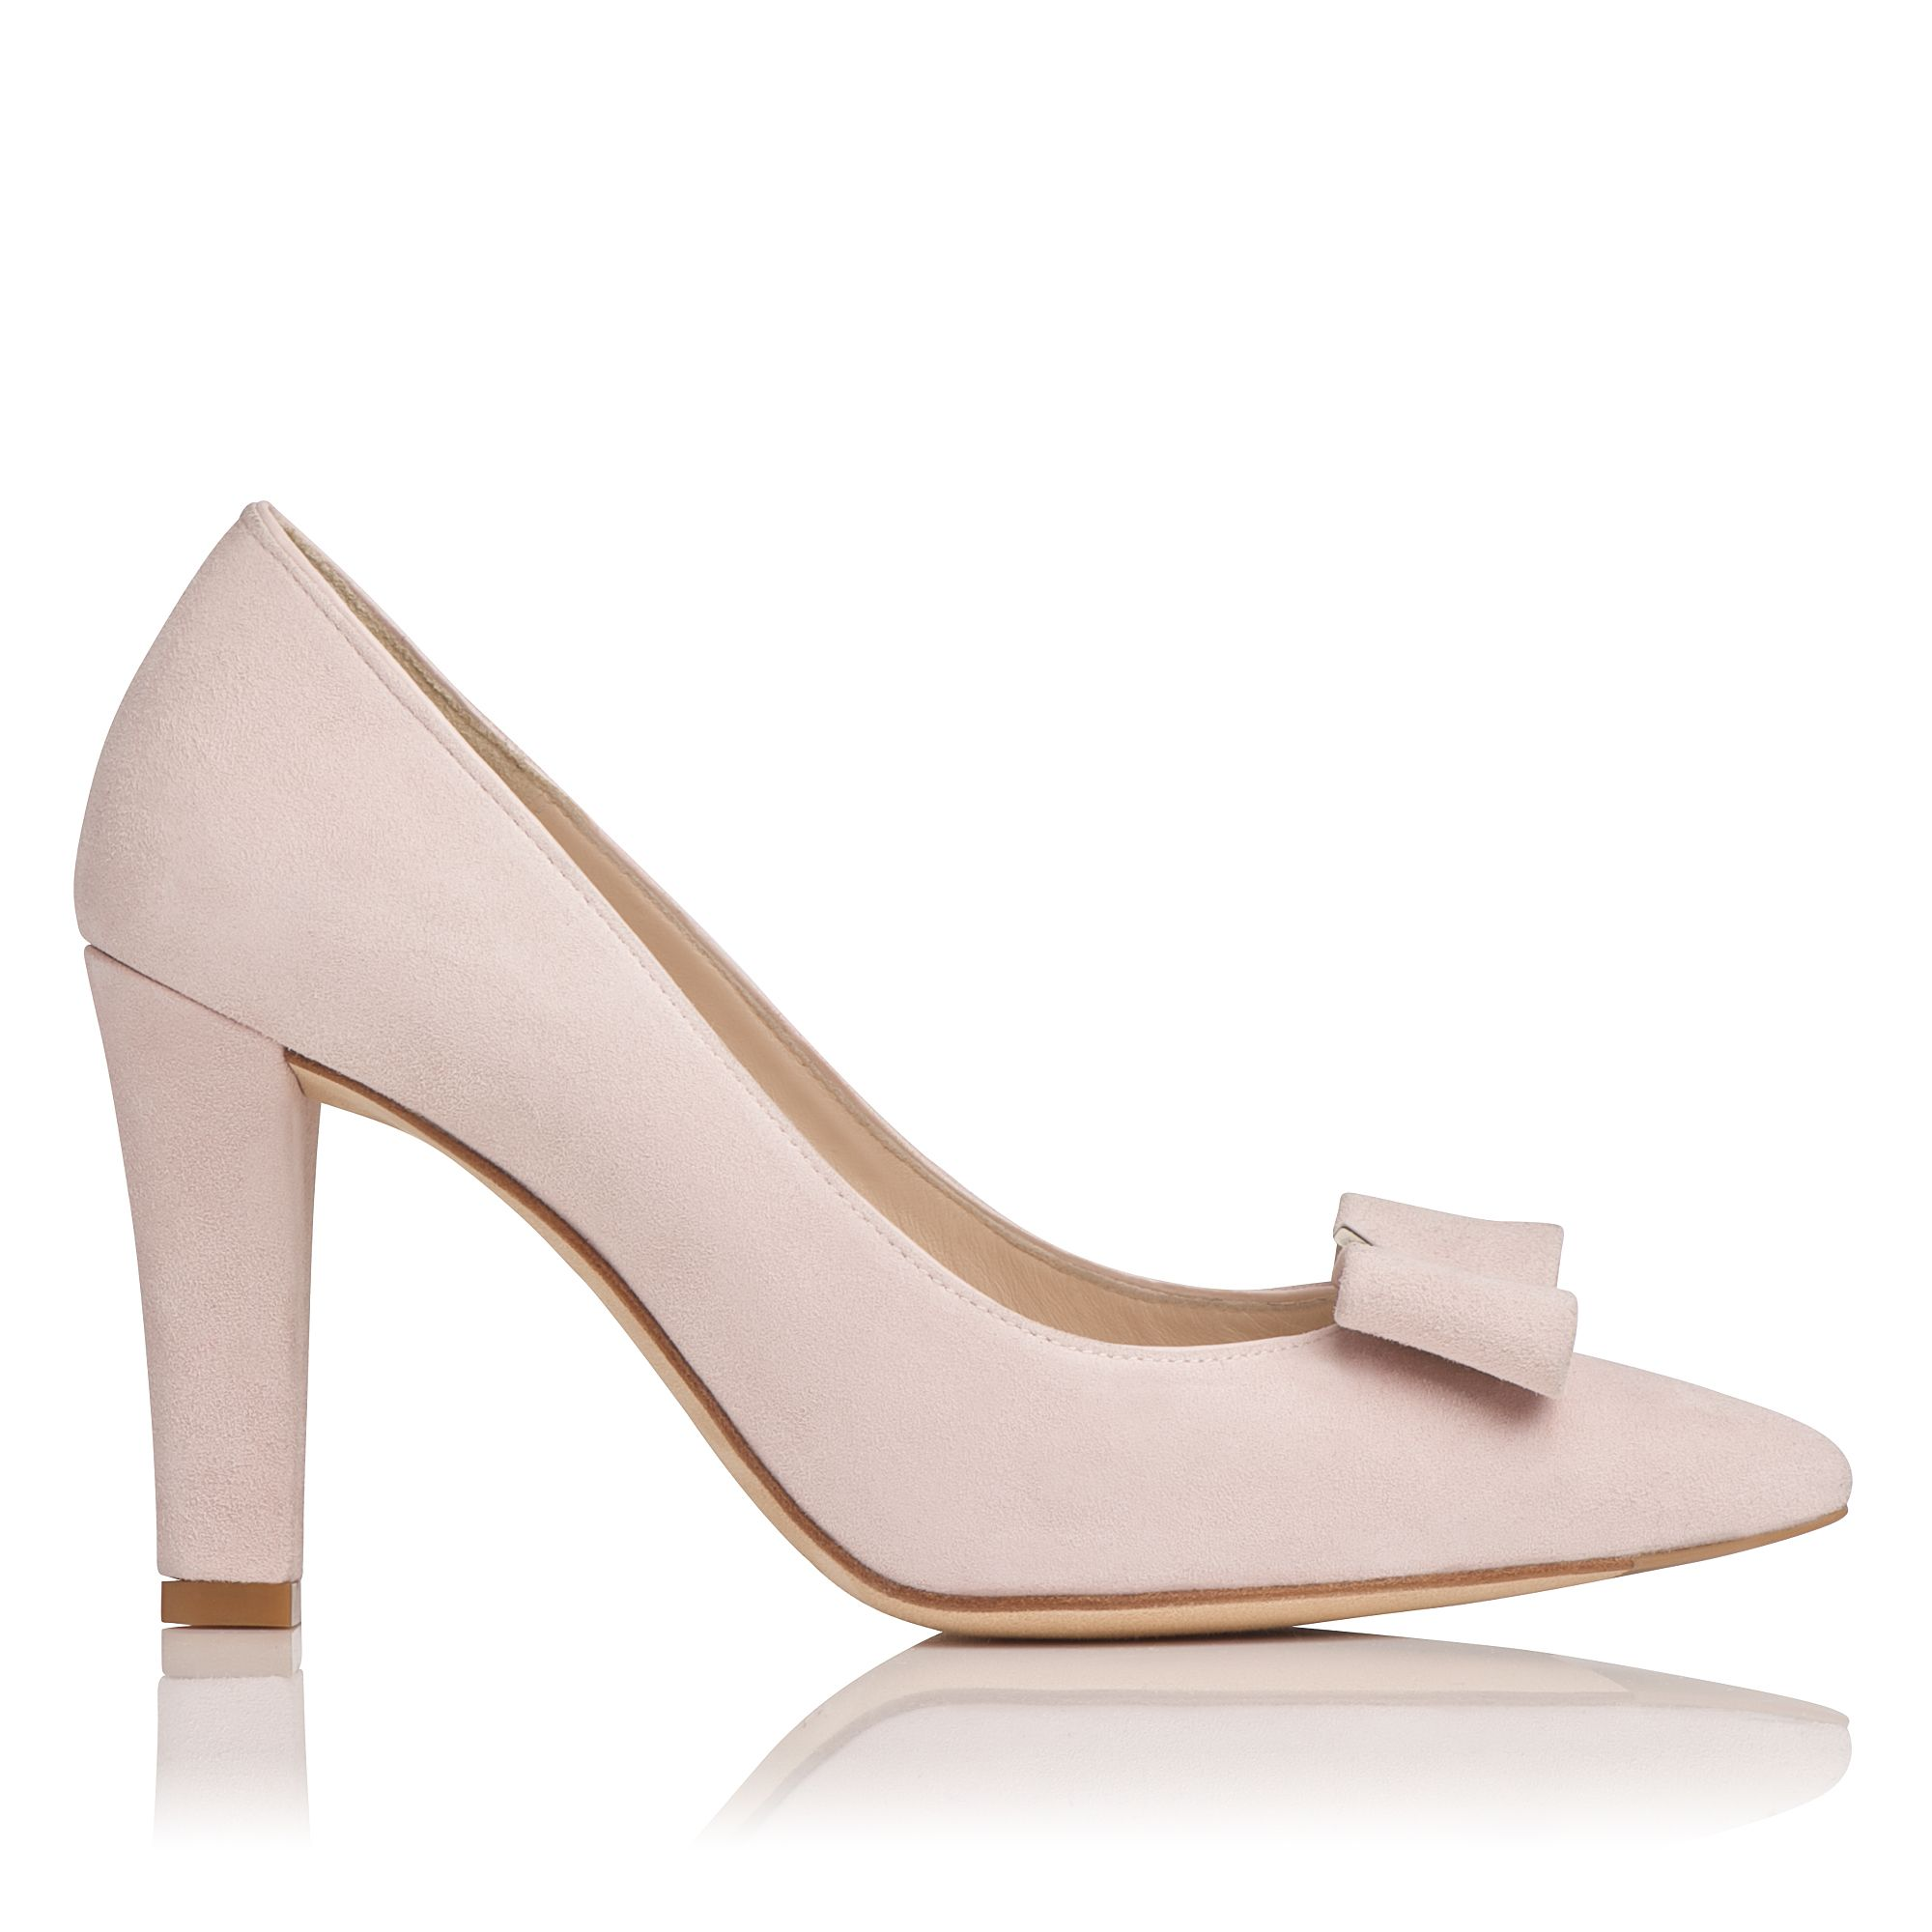 Kareena suede block heel court shoes